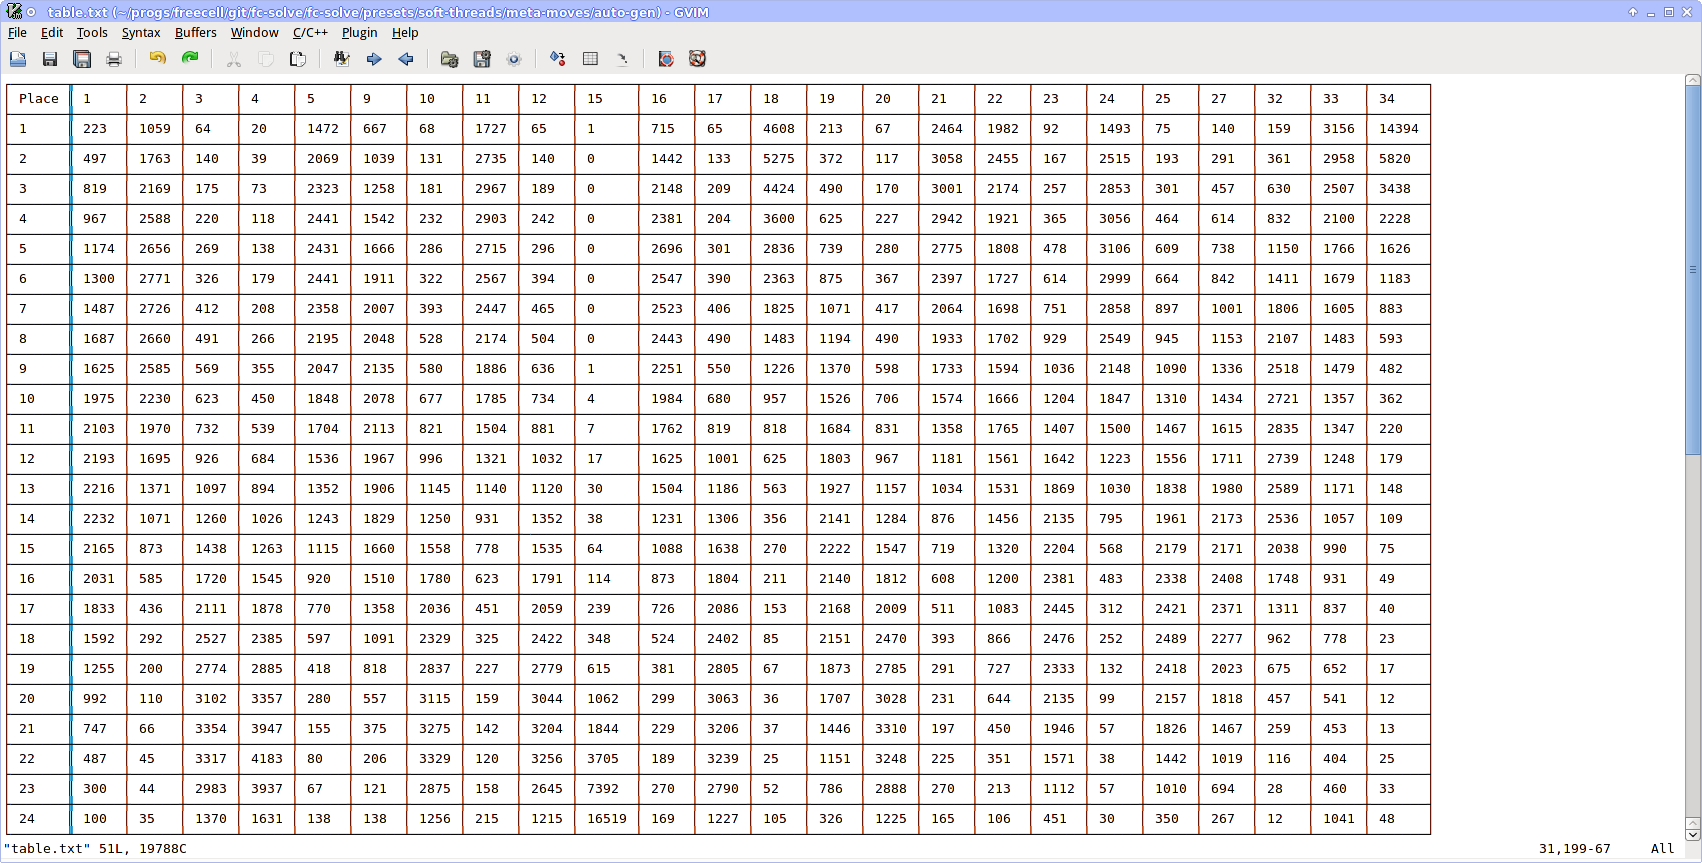 Worksheets 11to 20 Table table from 11 to 20 rupsucks printables worksheets index of filesfilesimages 128k lines vim in konsole png